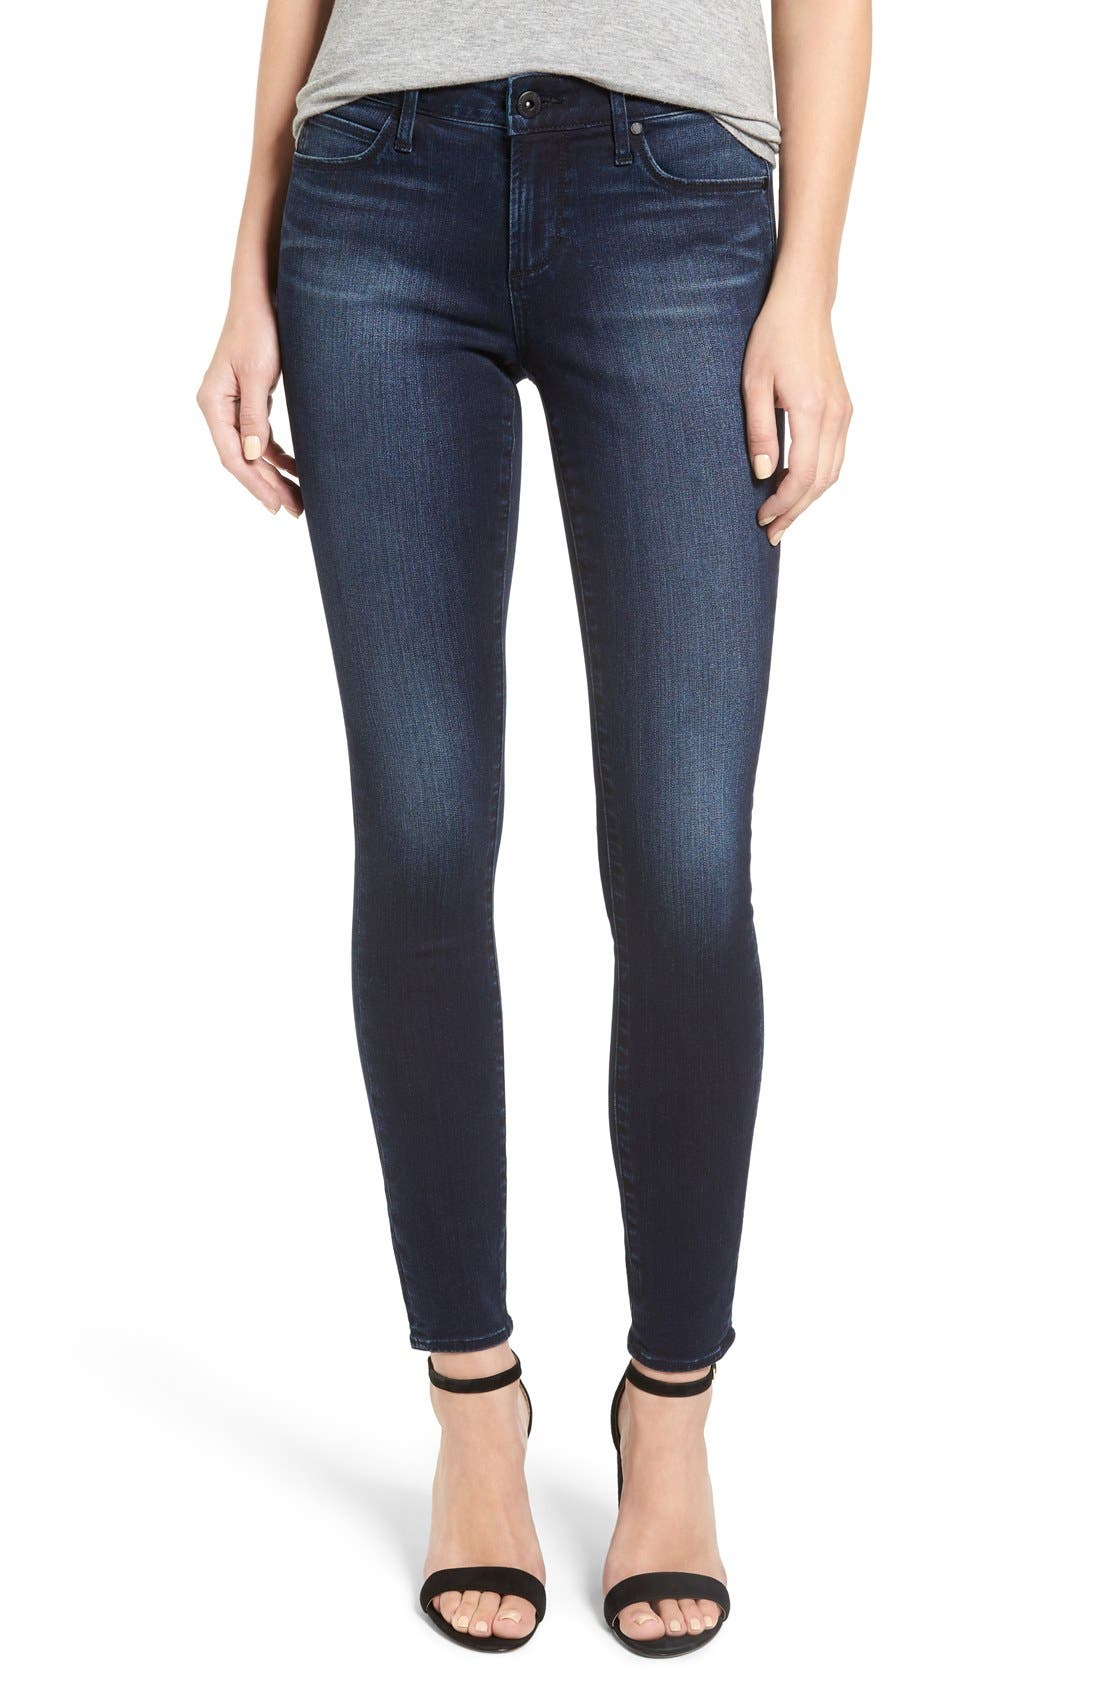 Alternate Image 1 Selected - Articles of Society Sarah Skinny Jeans